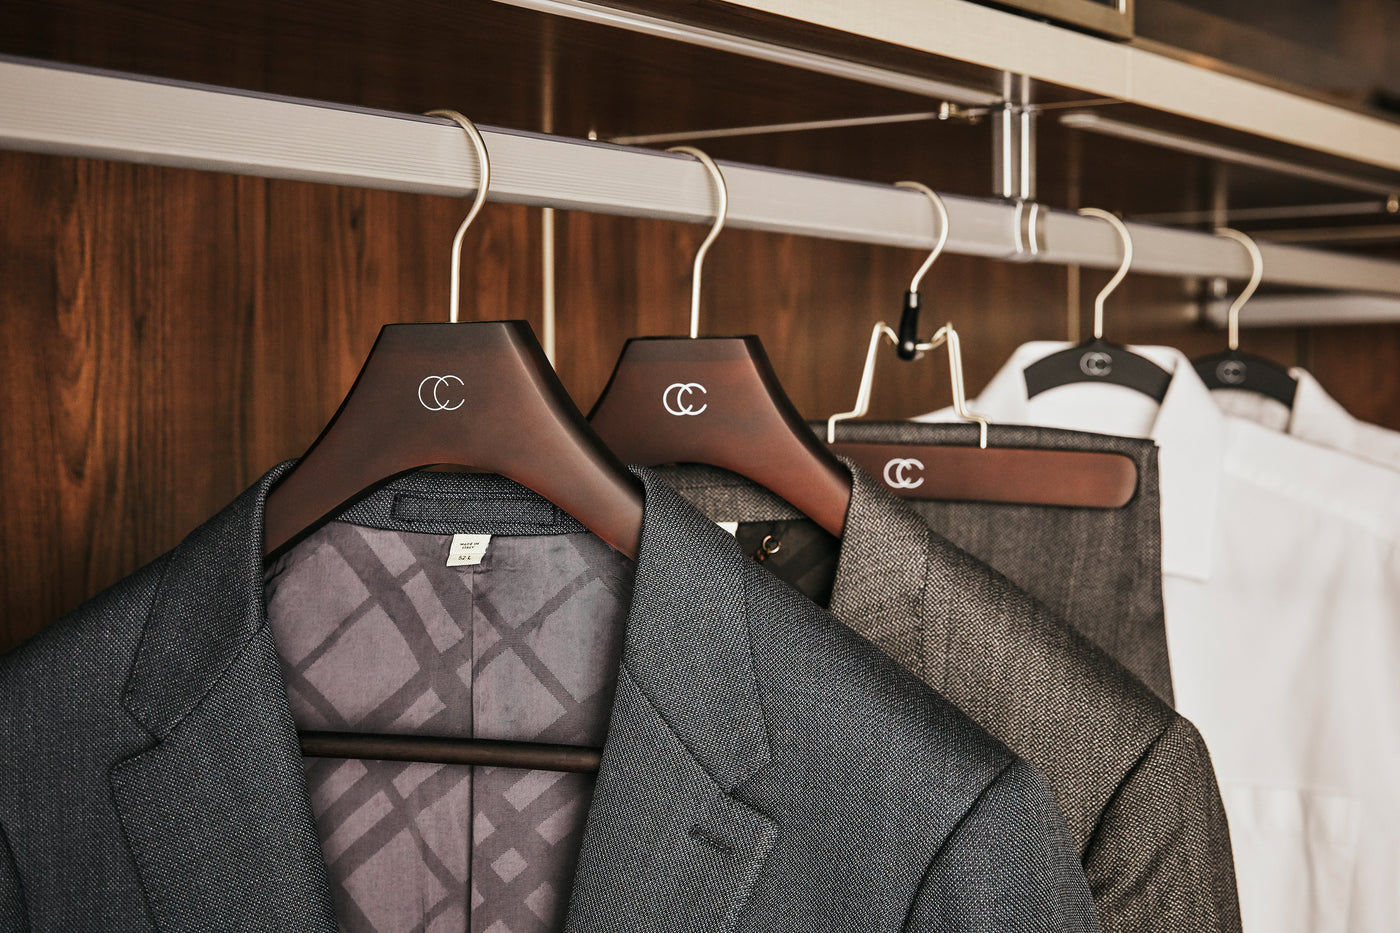 Woodgrain Hangers Collection by California Closets Essentials